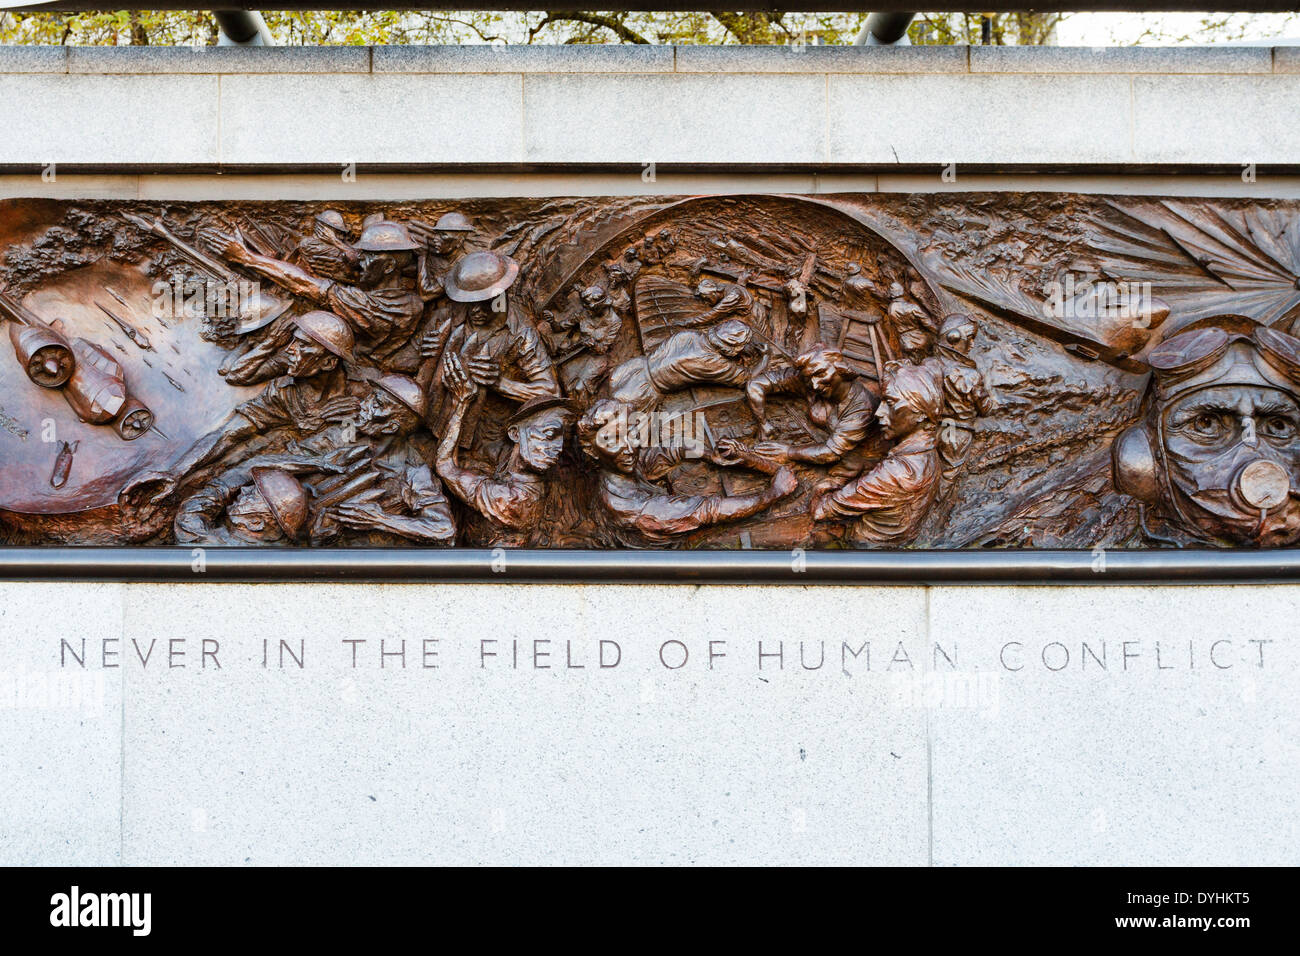 Battle of Britain Monument on Victoria Embankment reading 'Never in the field of human conflict' spoken by Winston Churchill. - Stock Image